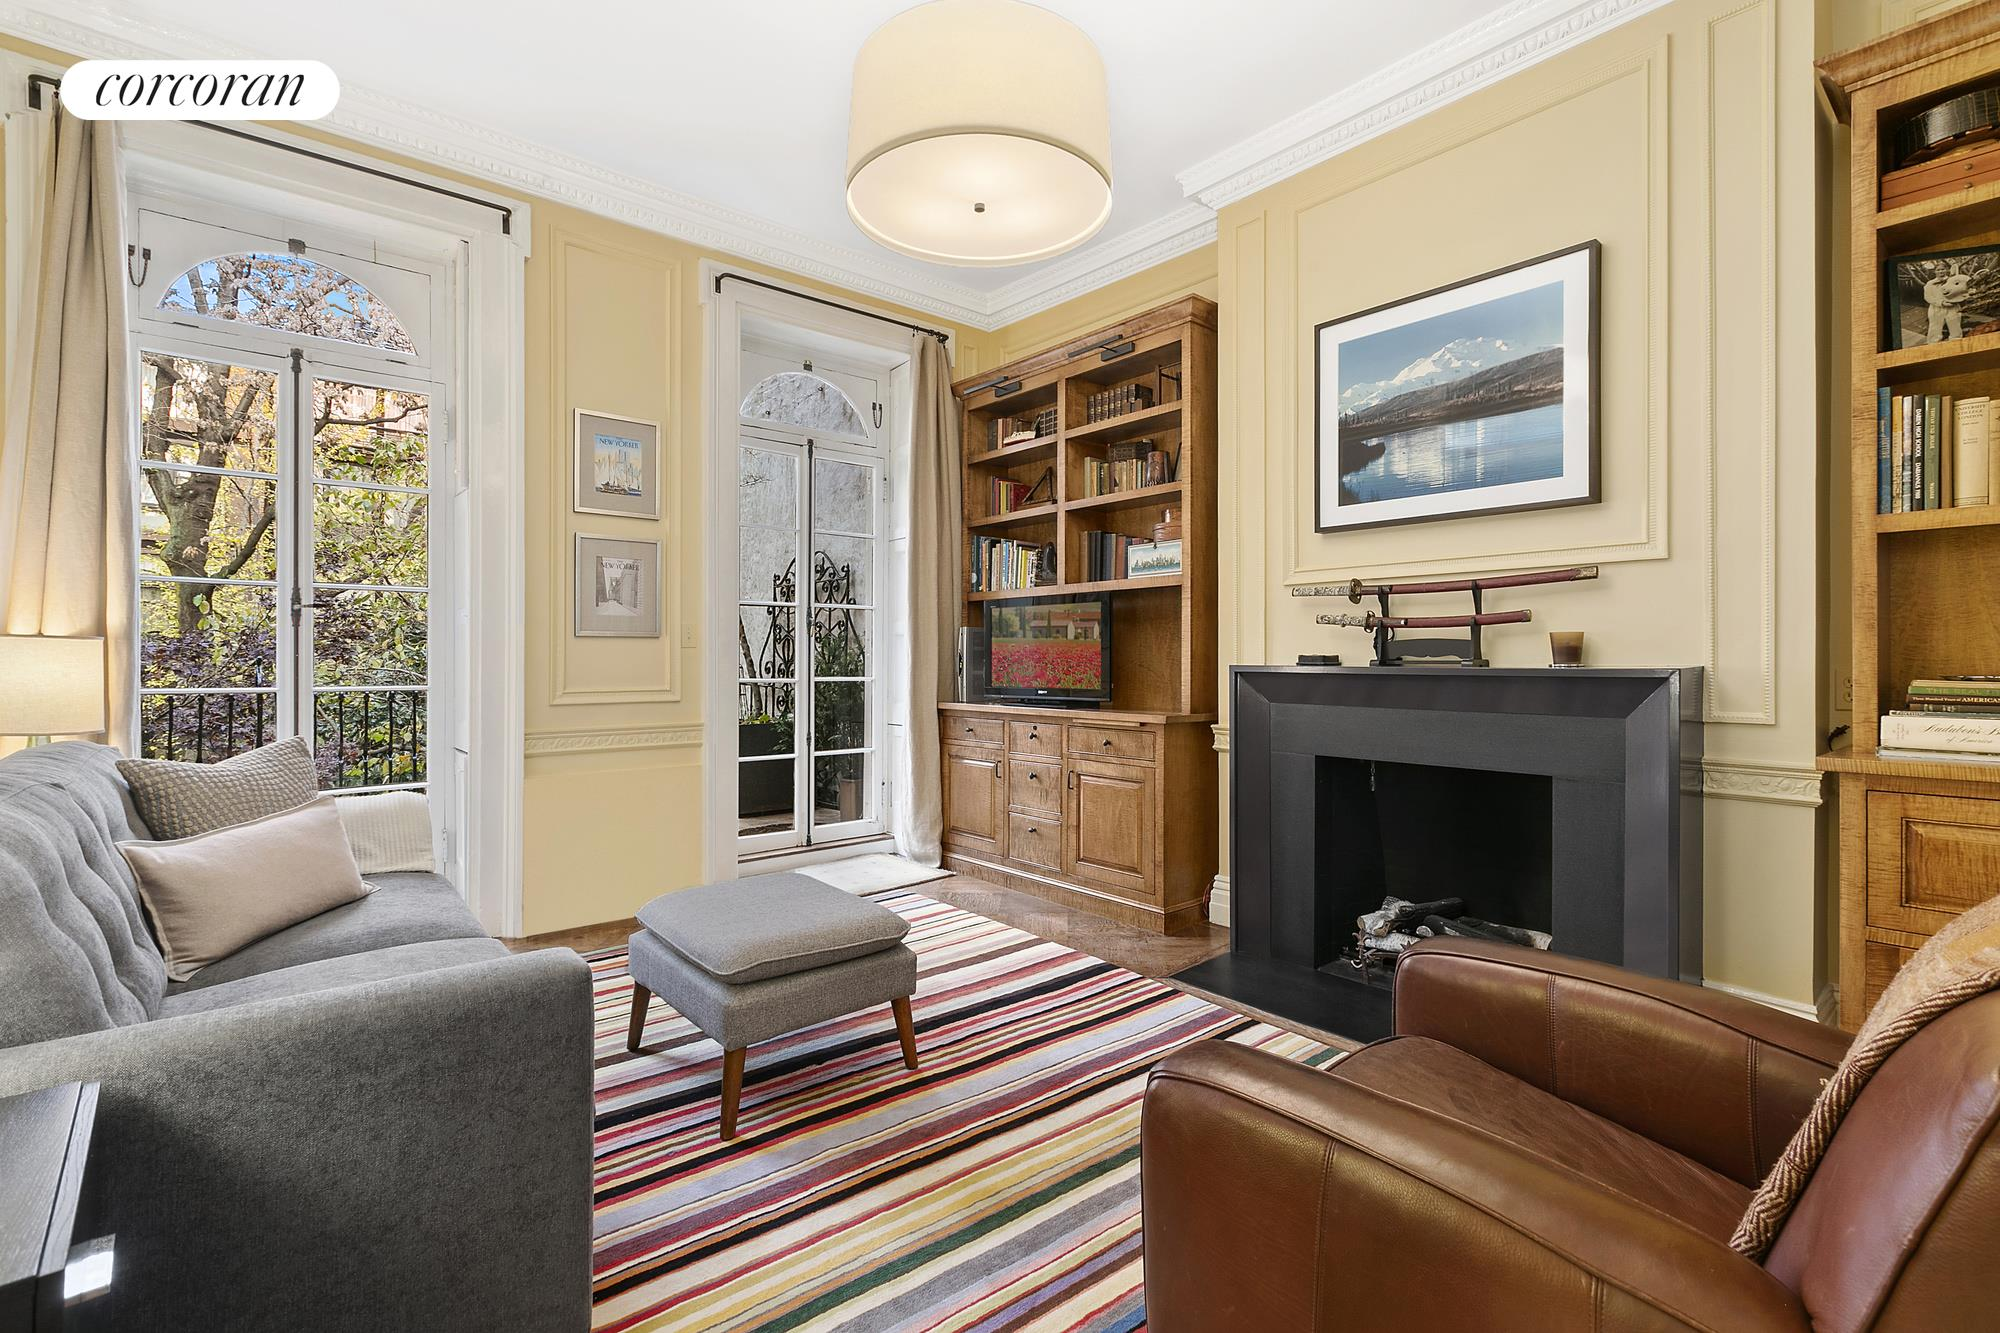 37 West 11th Street, front parlor